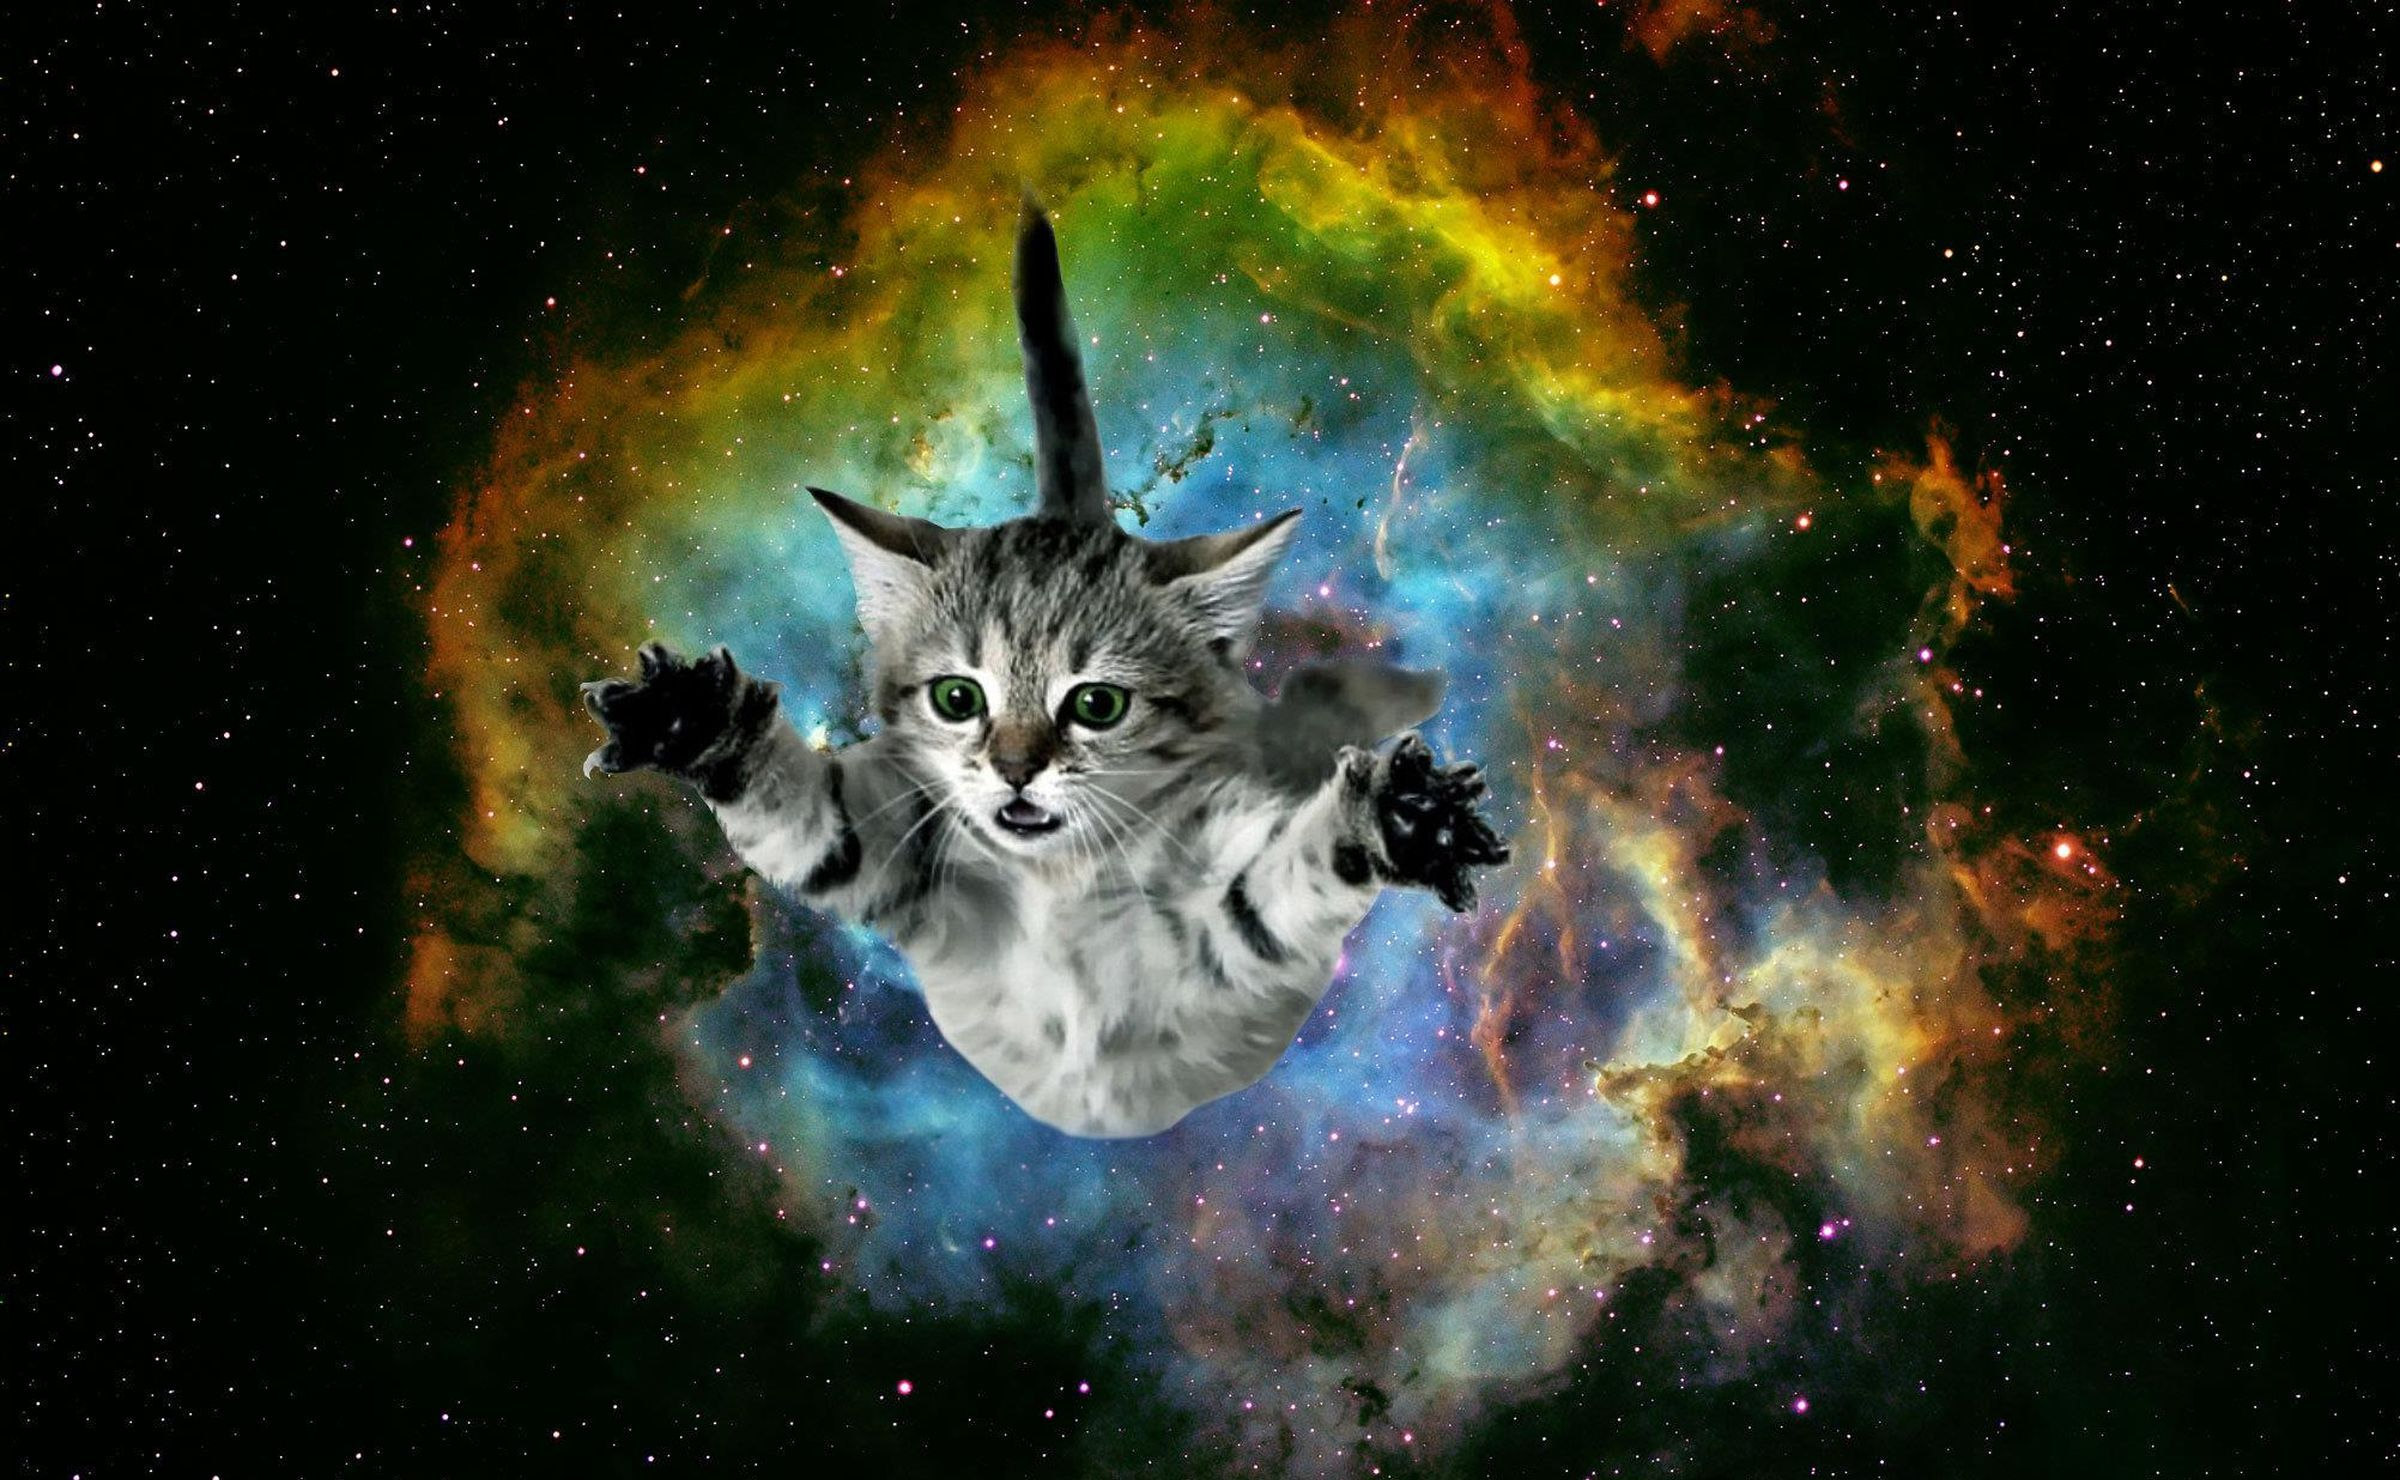 Galaxy Cat Wallpapers Top Free Galaxy Cat Backgrounds Wallpaperaccess